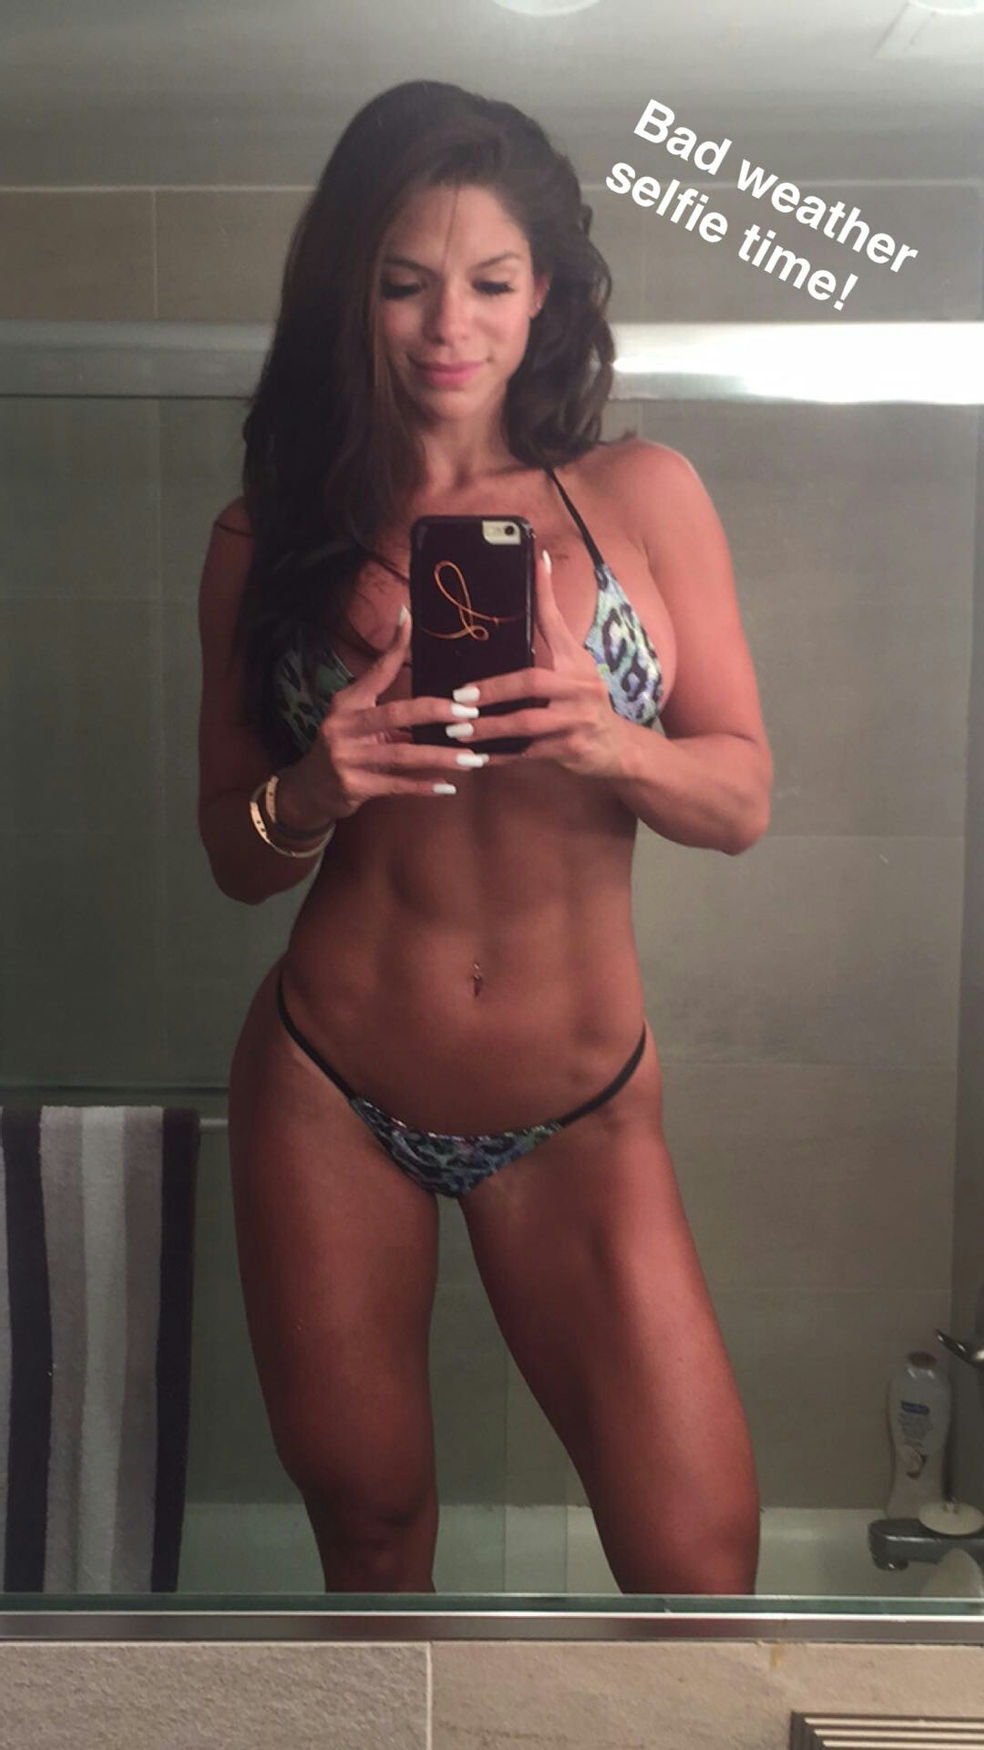 Michelle Lewin in a bikini taking a selfie